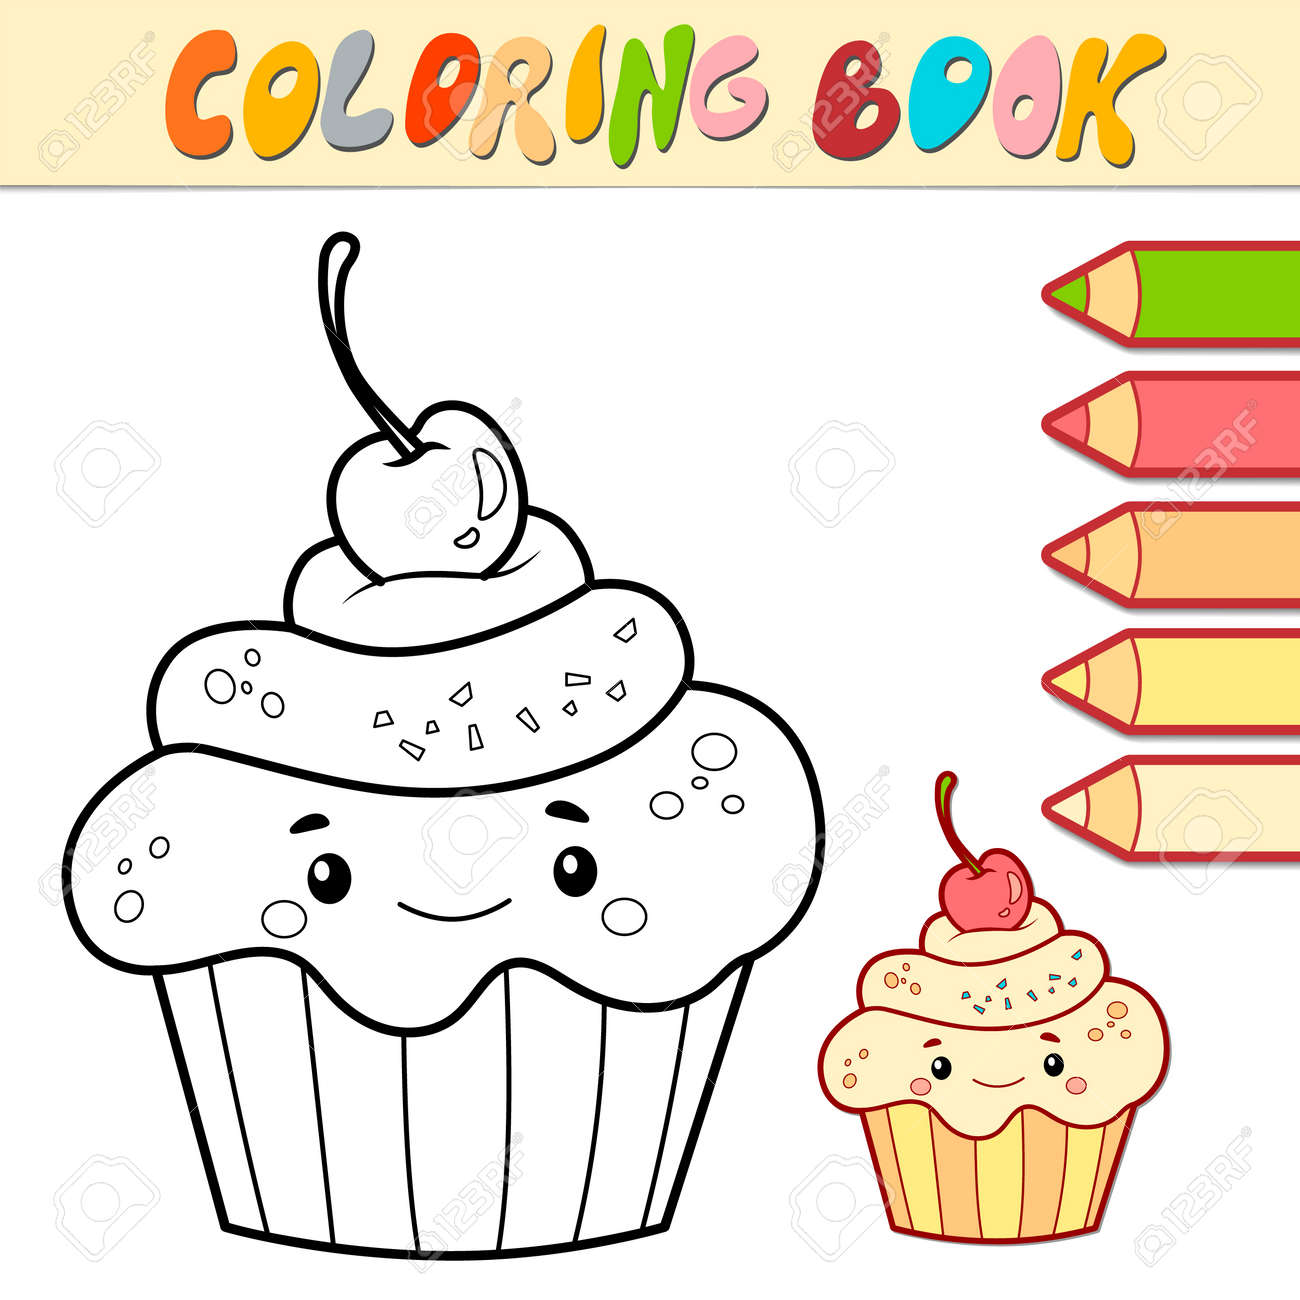 Coloring book or page for kids. cake black and white vector illustration - 168986155